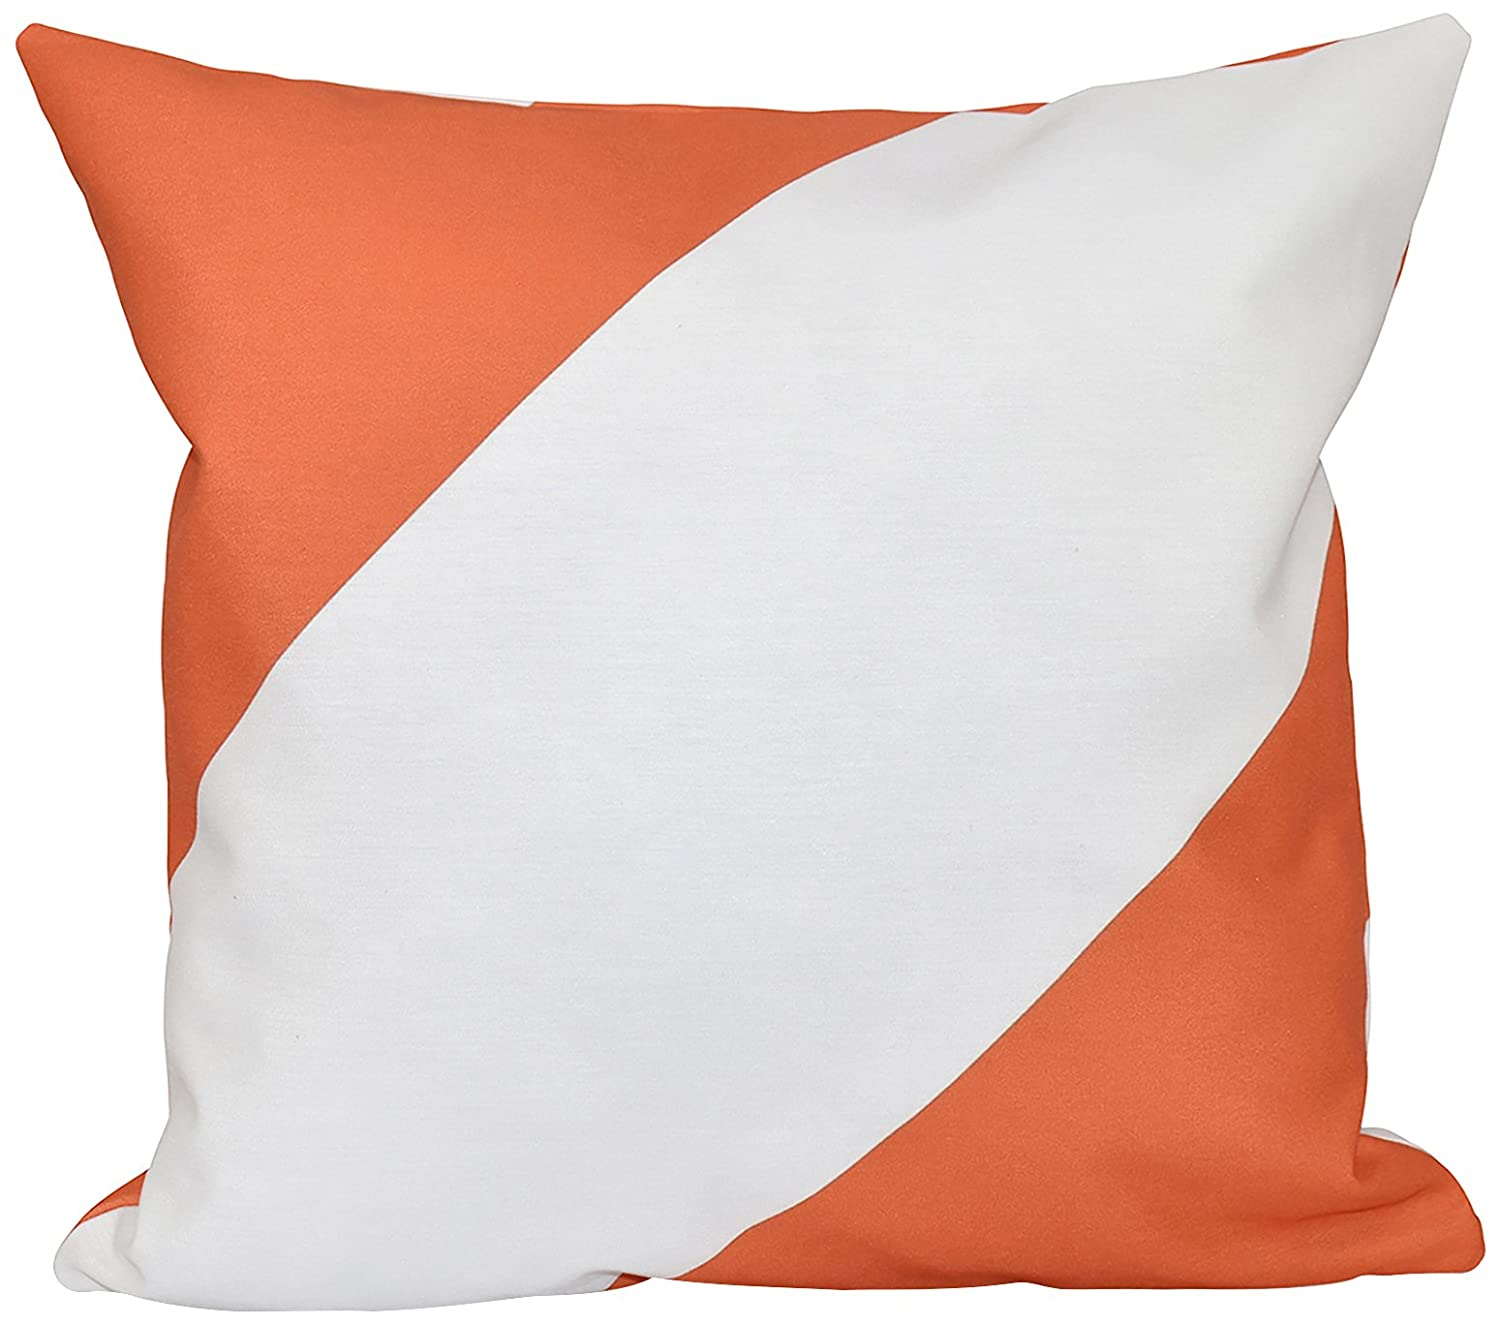 E by design Decorative Pillow Celosia Orange